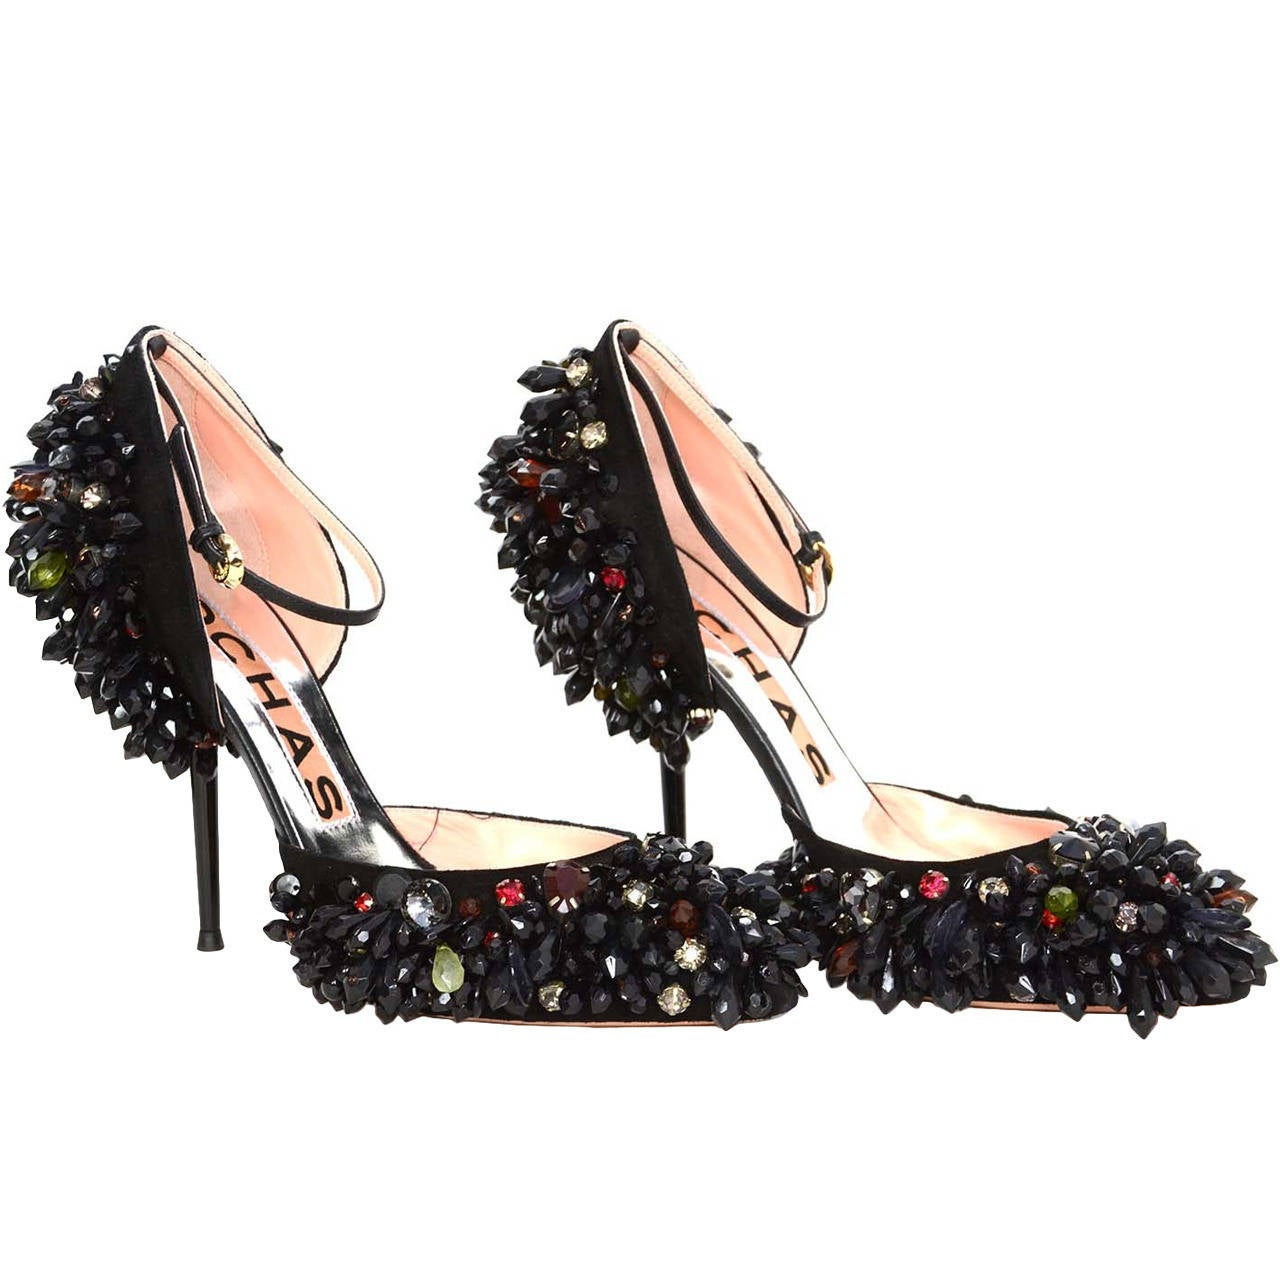 ROCHAS Black Embellished Pointed Toe Pumps sz 39 rt. $2,075 1